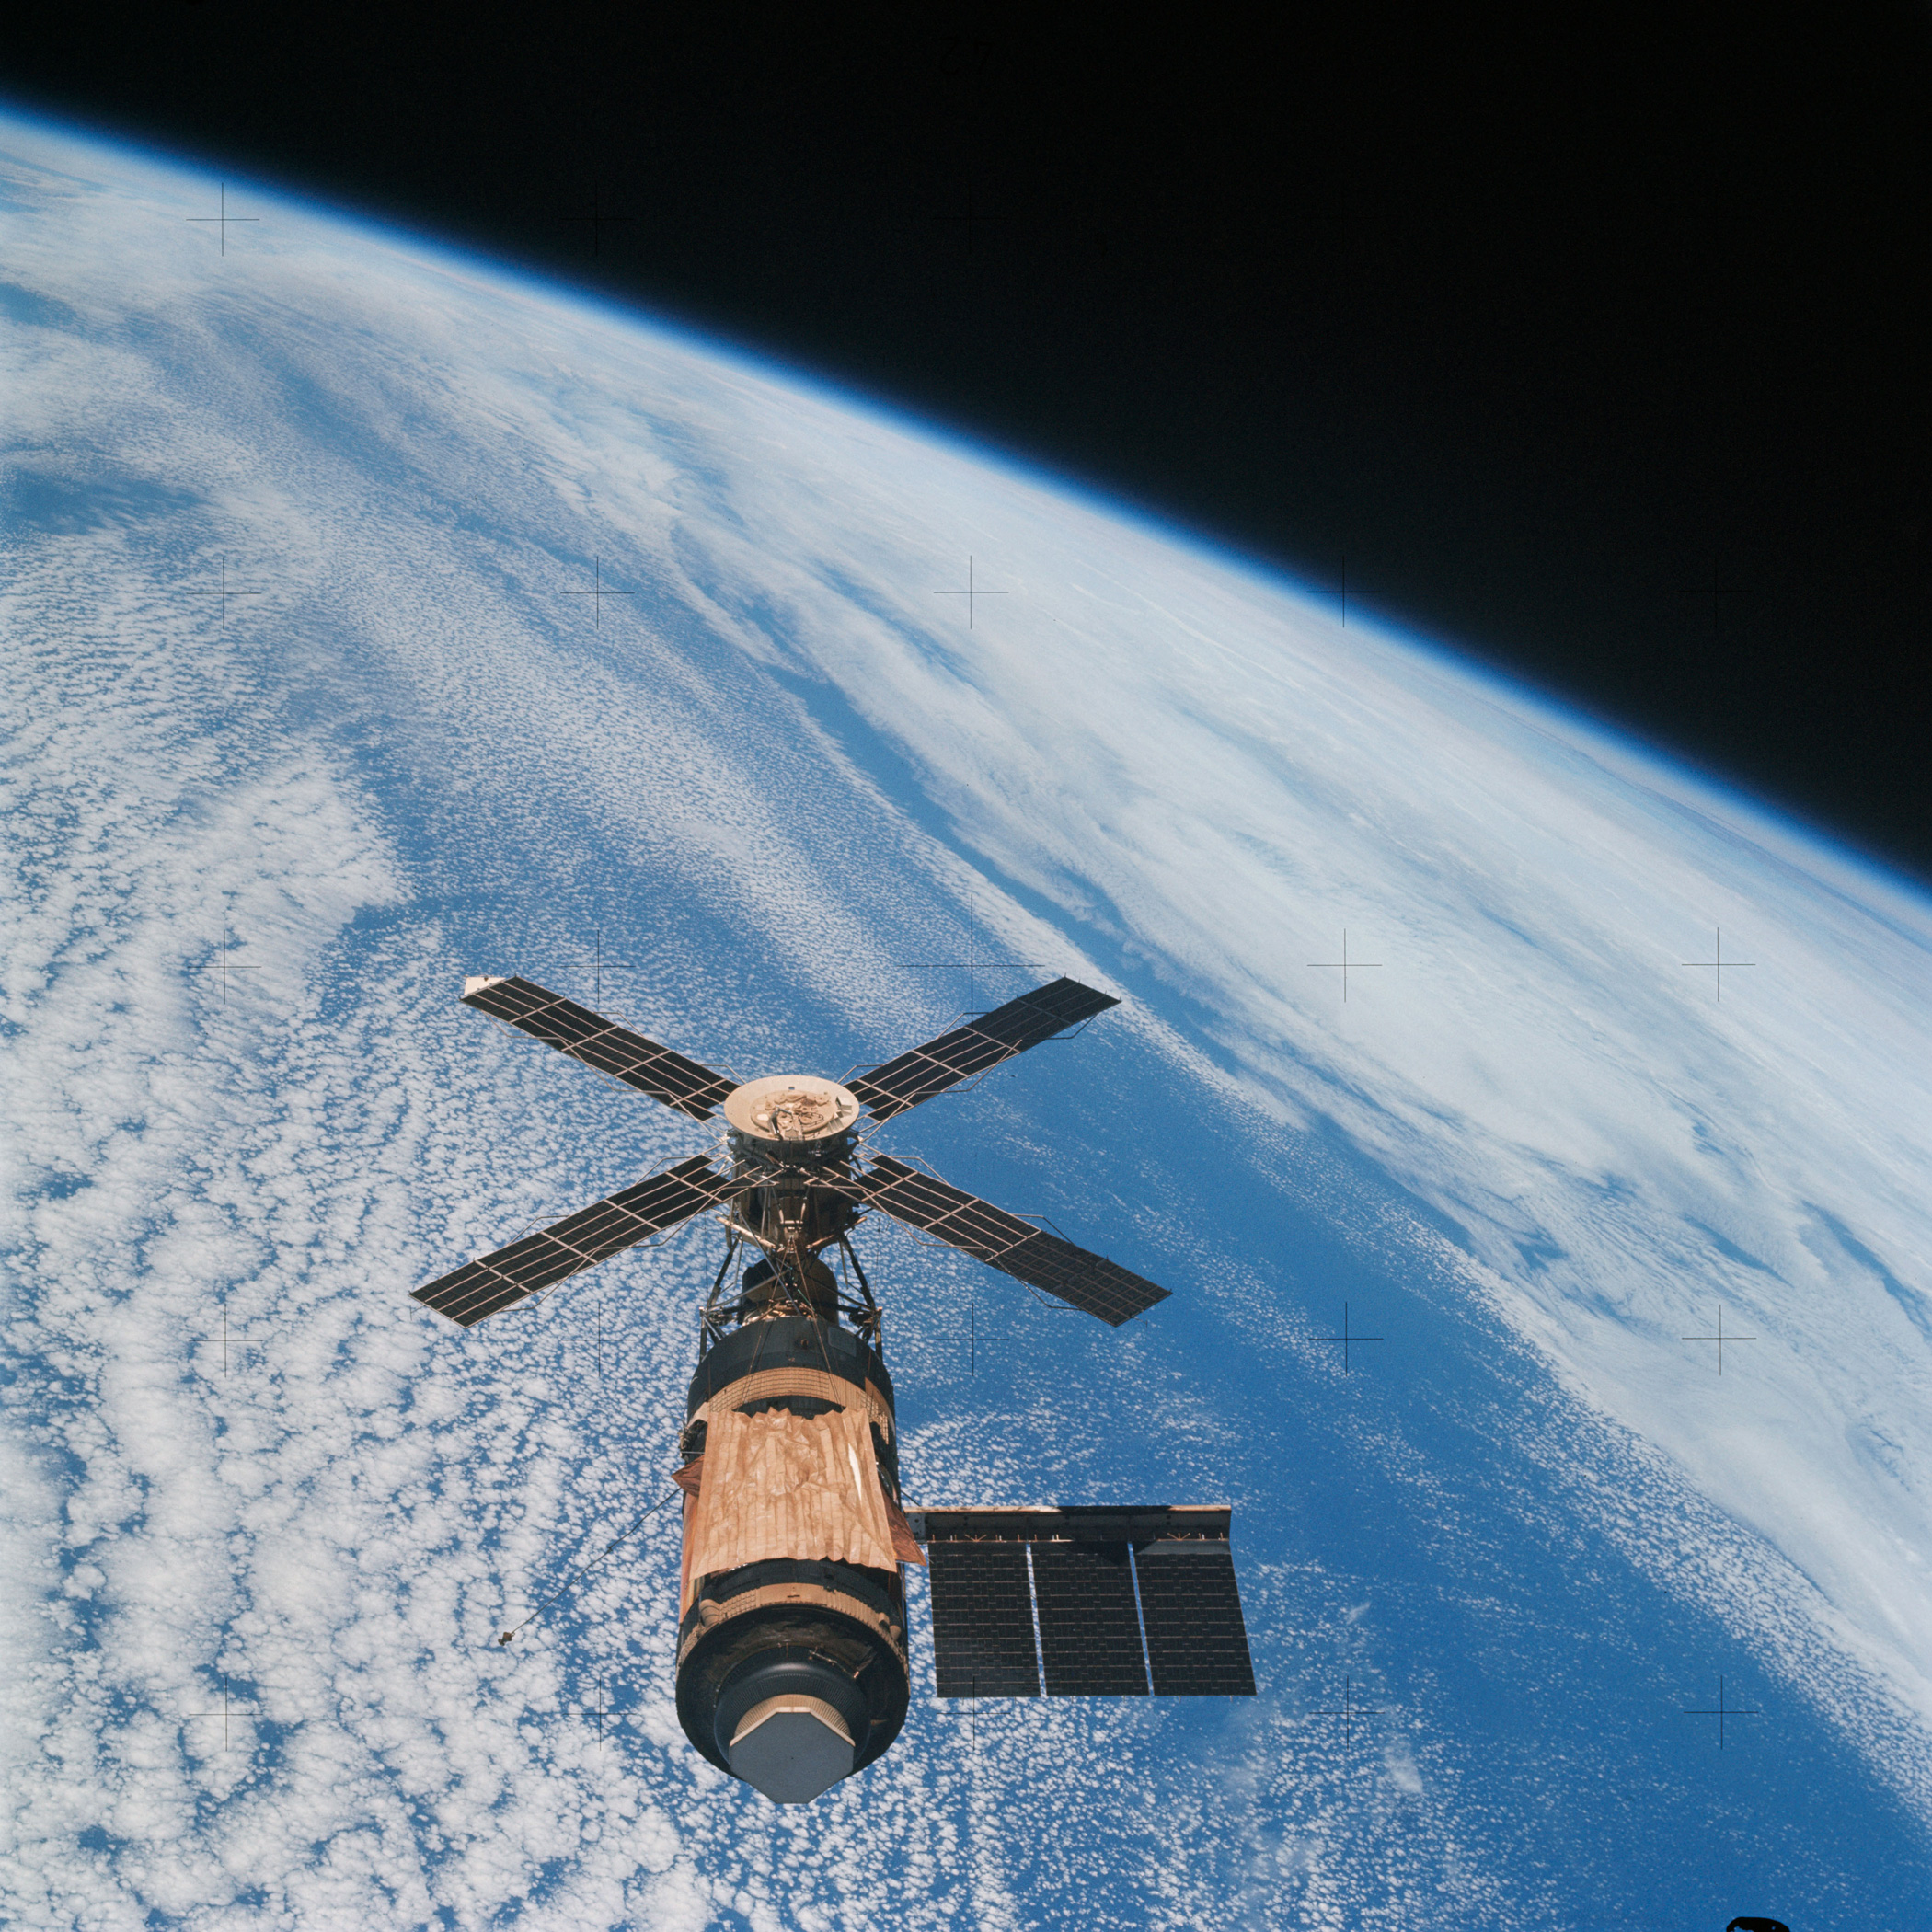 <b>Skylab in Orbit, 1973</b>; An overhead view of the Skylab space station cluster in Earth orbit as photographed from the Skylab 4 Command and Service Modules (CSM) during the final fly-around by the CSM before returning home on May 14, 1973.